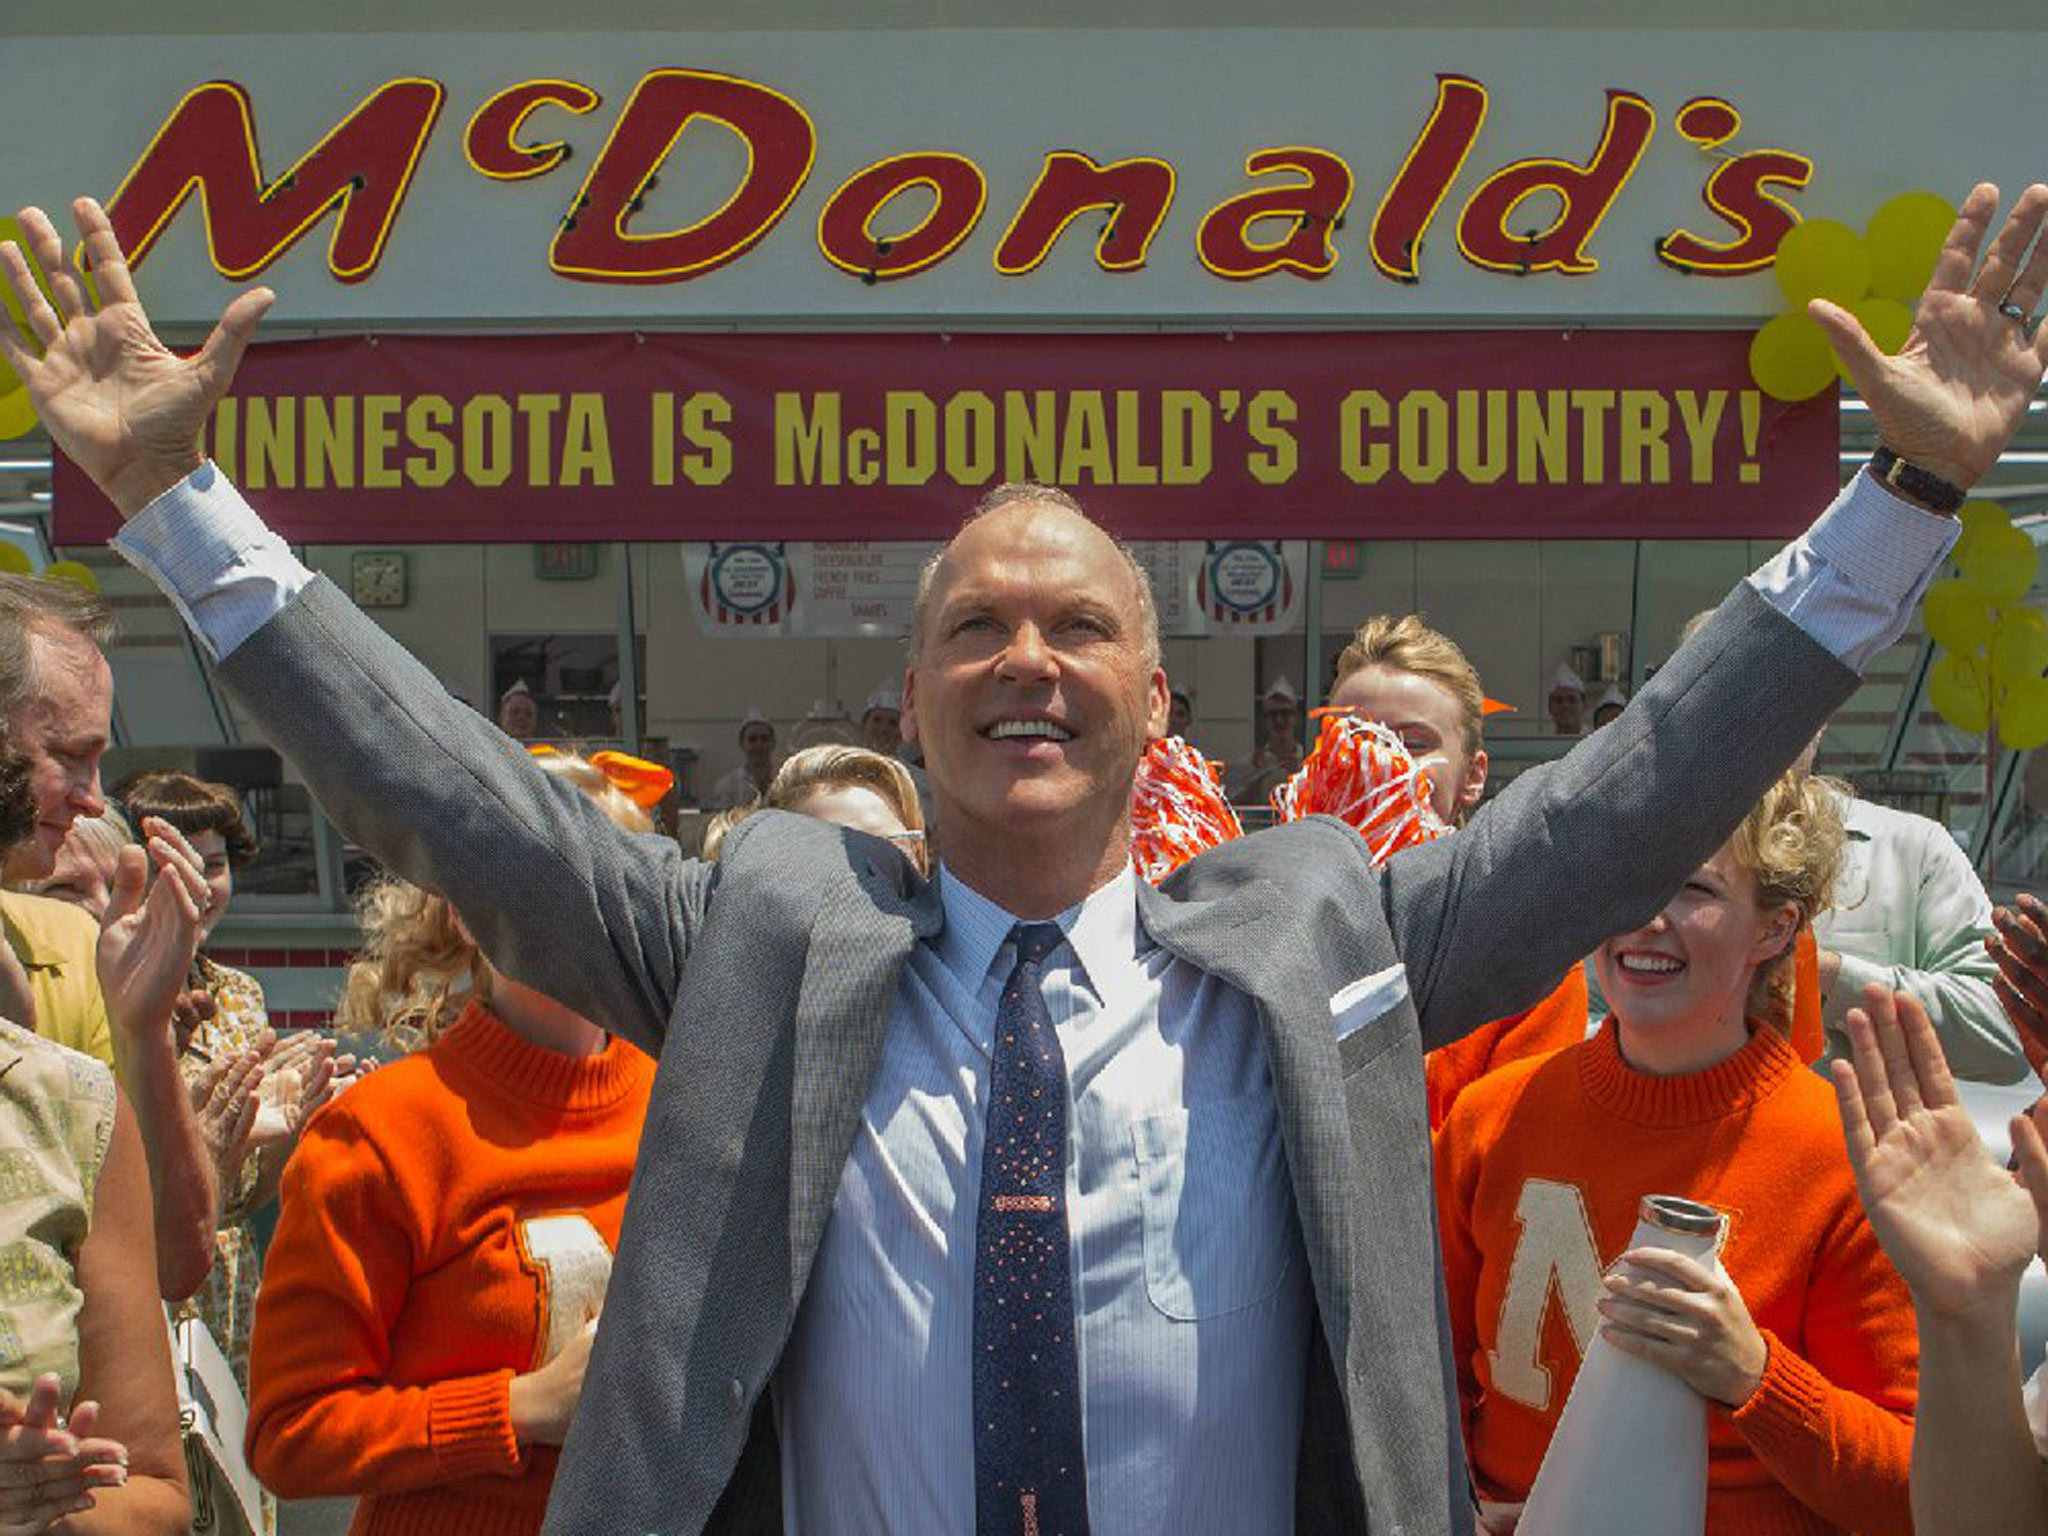 McDonald's movie The Founder gives franchise mogul Ray Kroc a good grilling